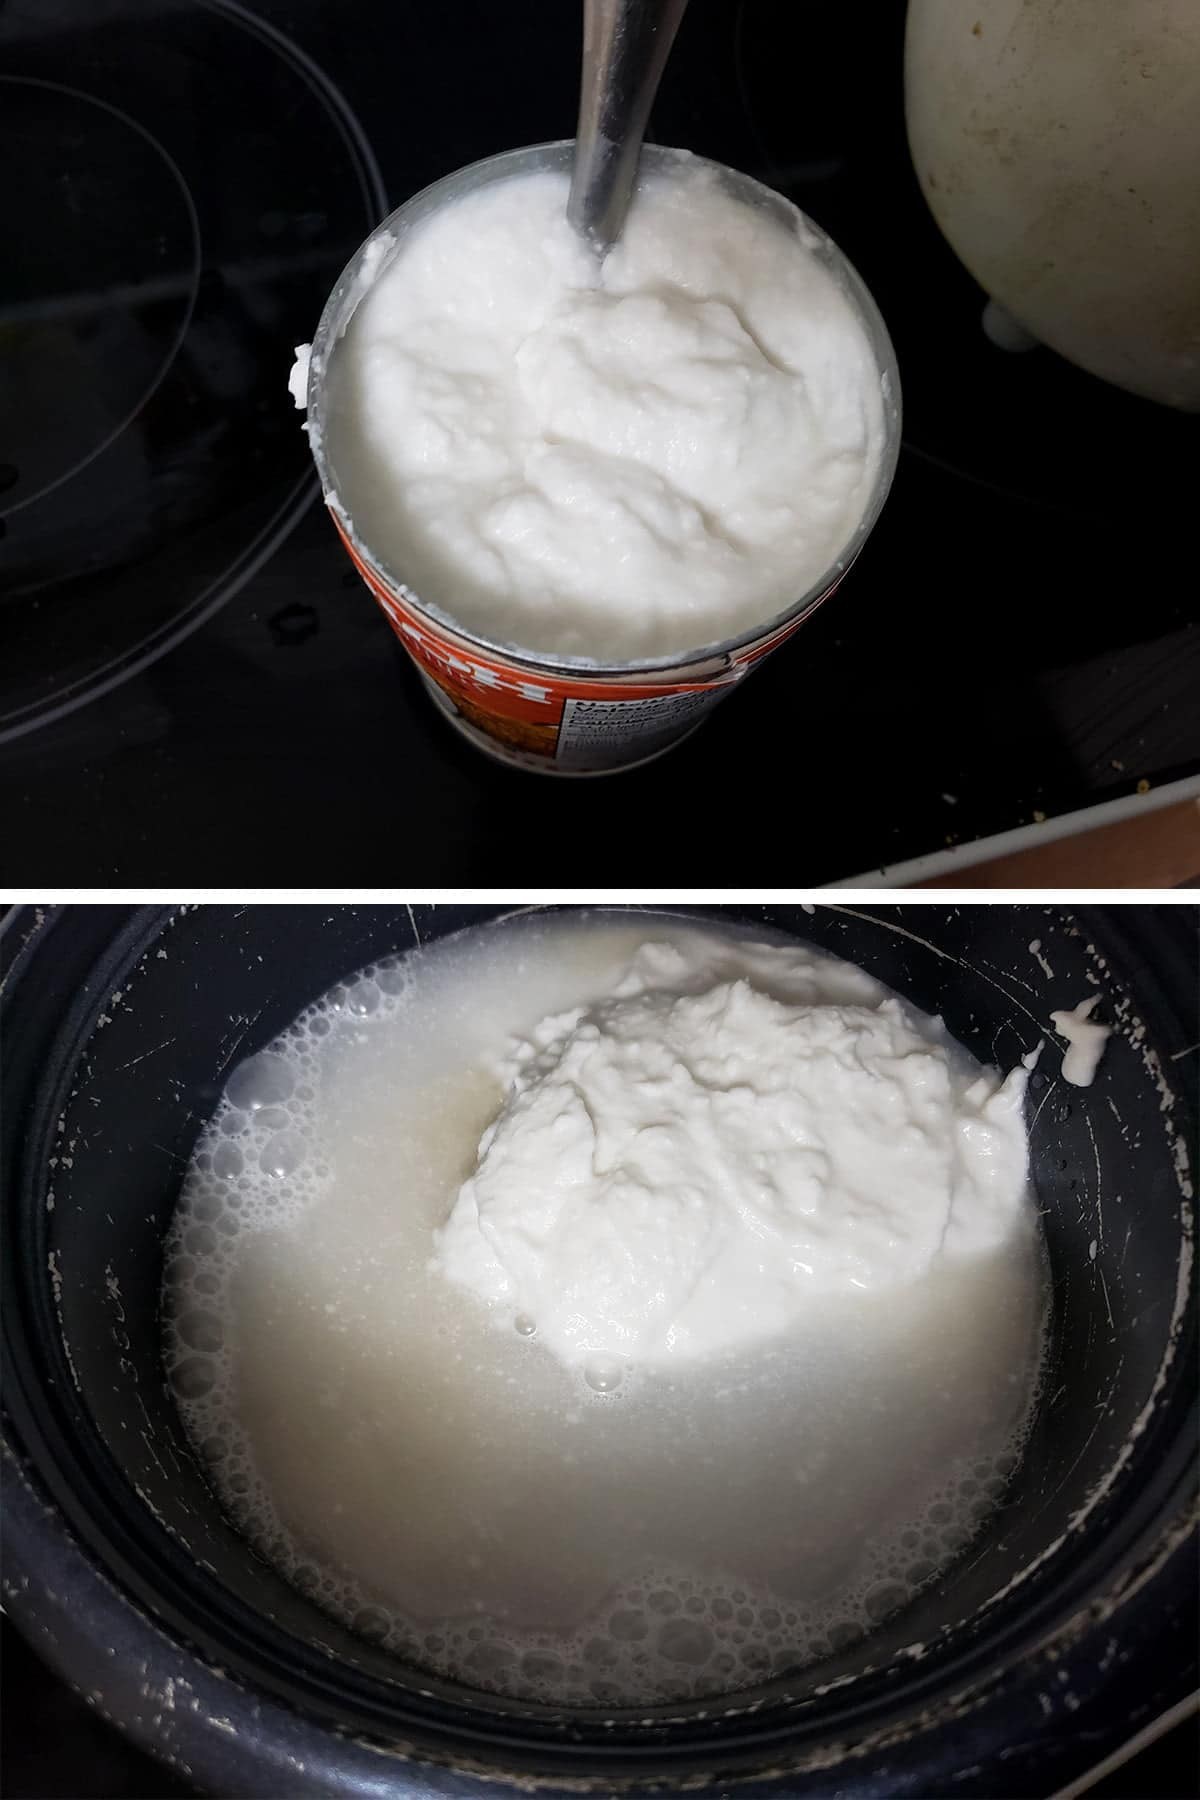 A two part image showing an opened can of coconut milk with a spoon in it, and a rice cooker with rice, water, and coconut milk in it.